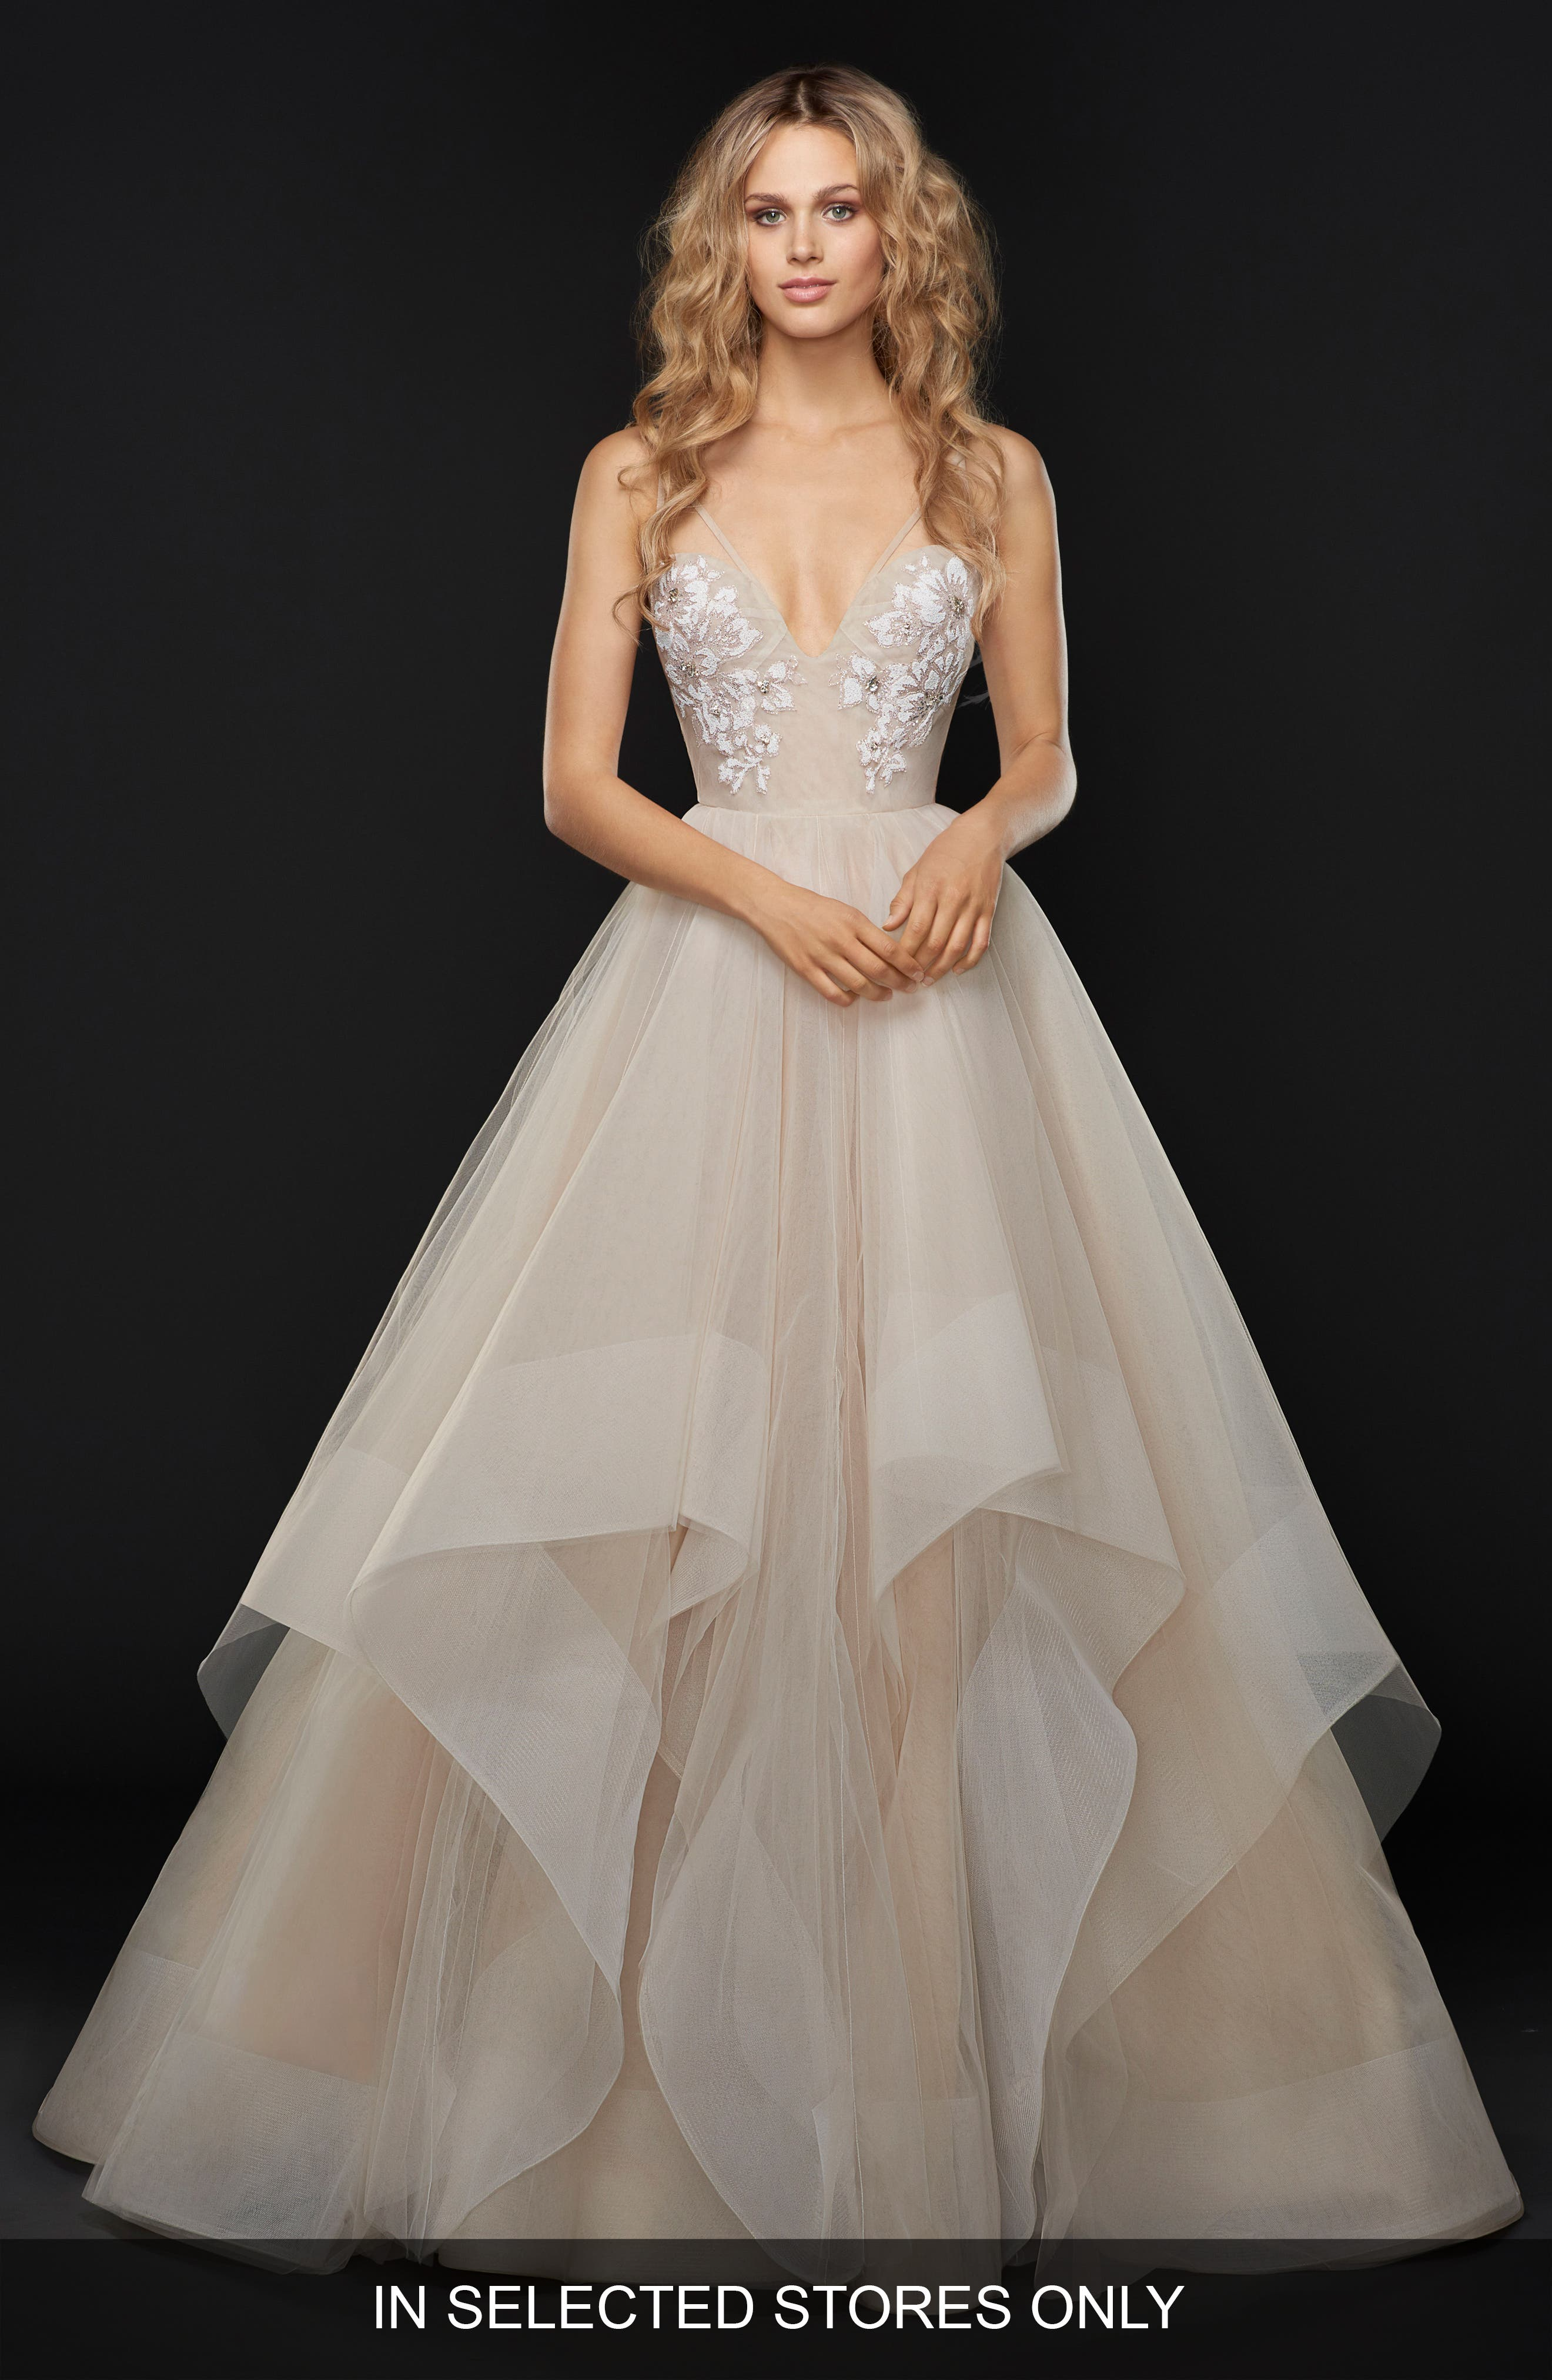 Main Image - Hayley Paige Keagan Embellished Tulle Ballgown